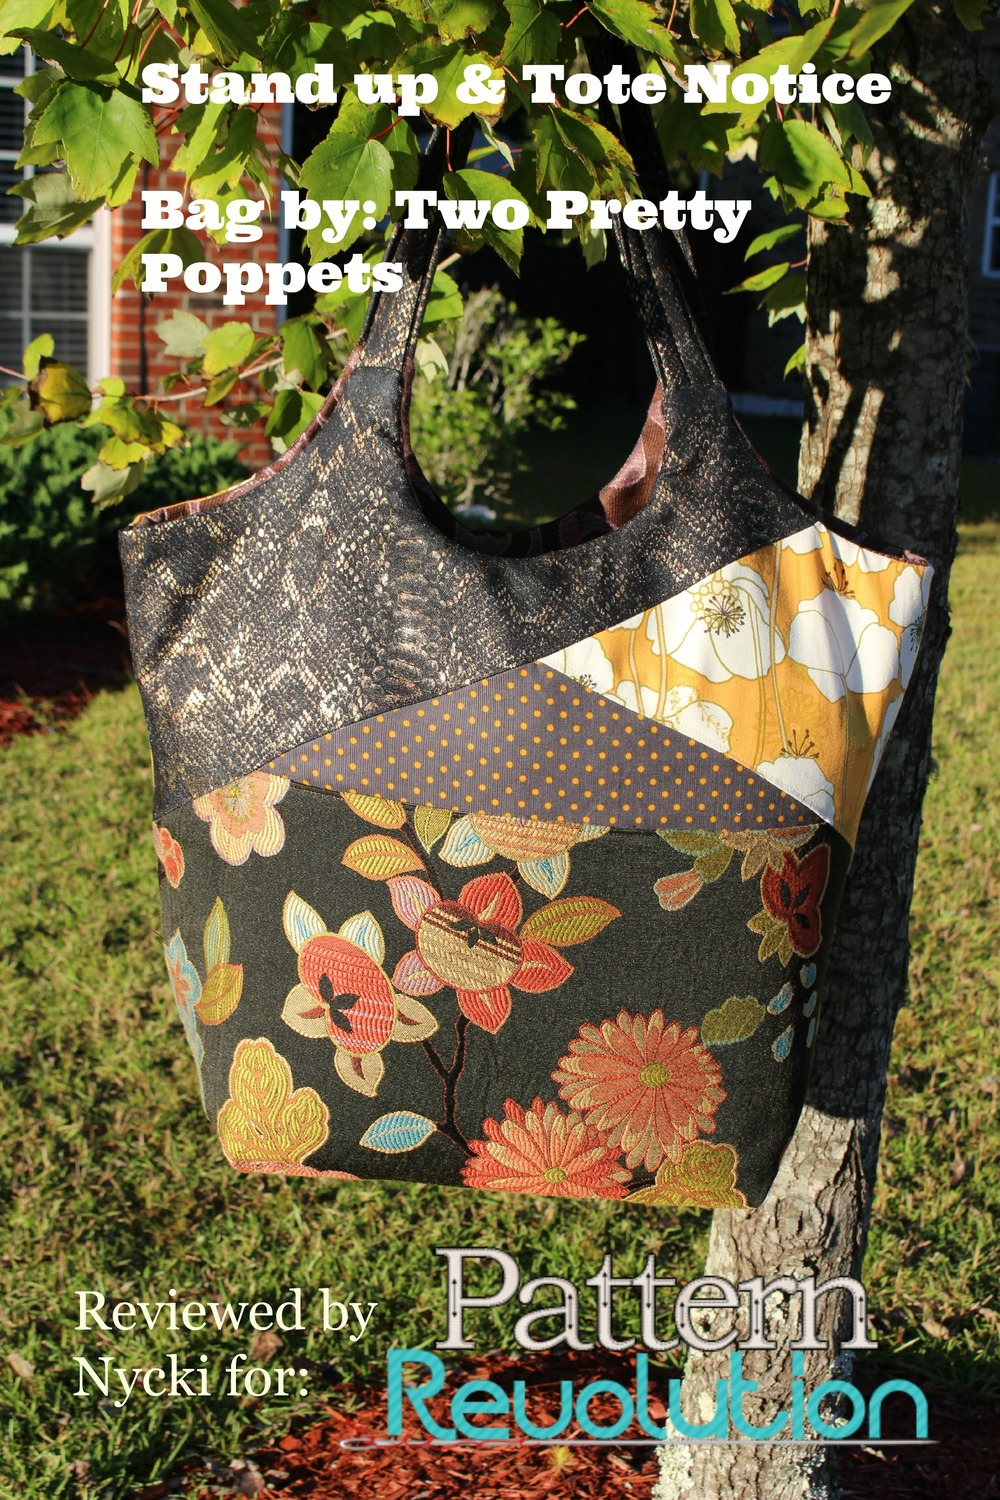 The Stand Up Amp Tote Notice By Two Pretty Poppets Pattern